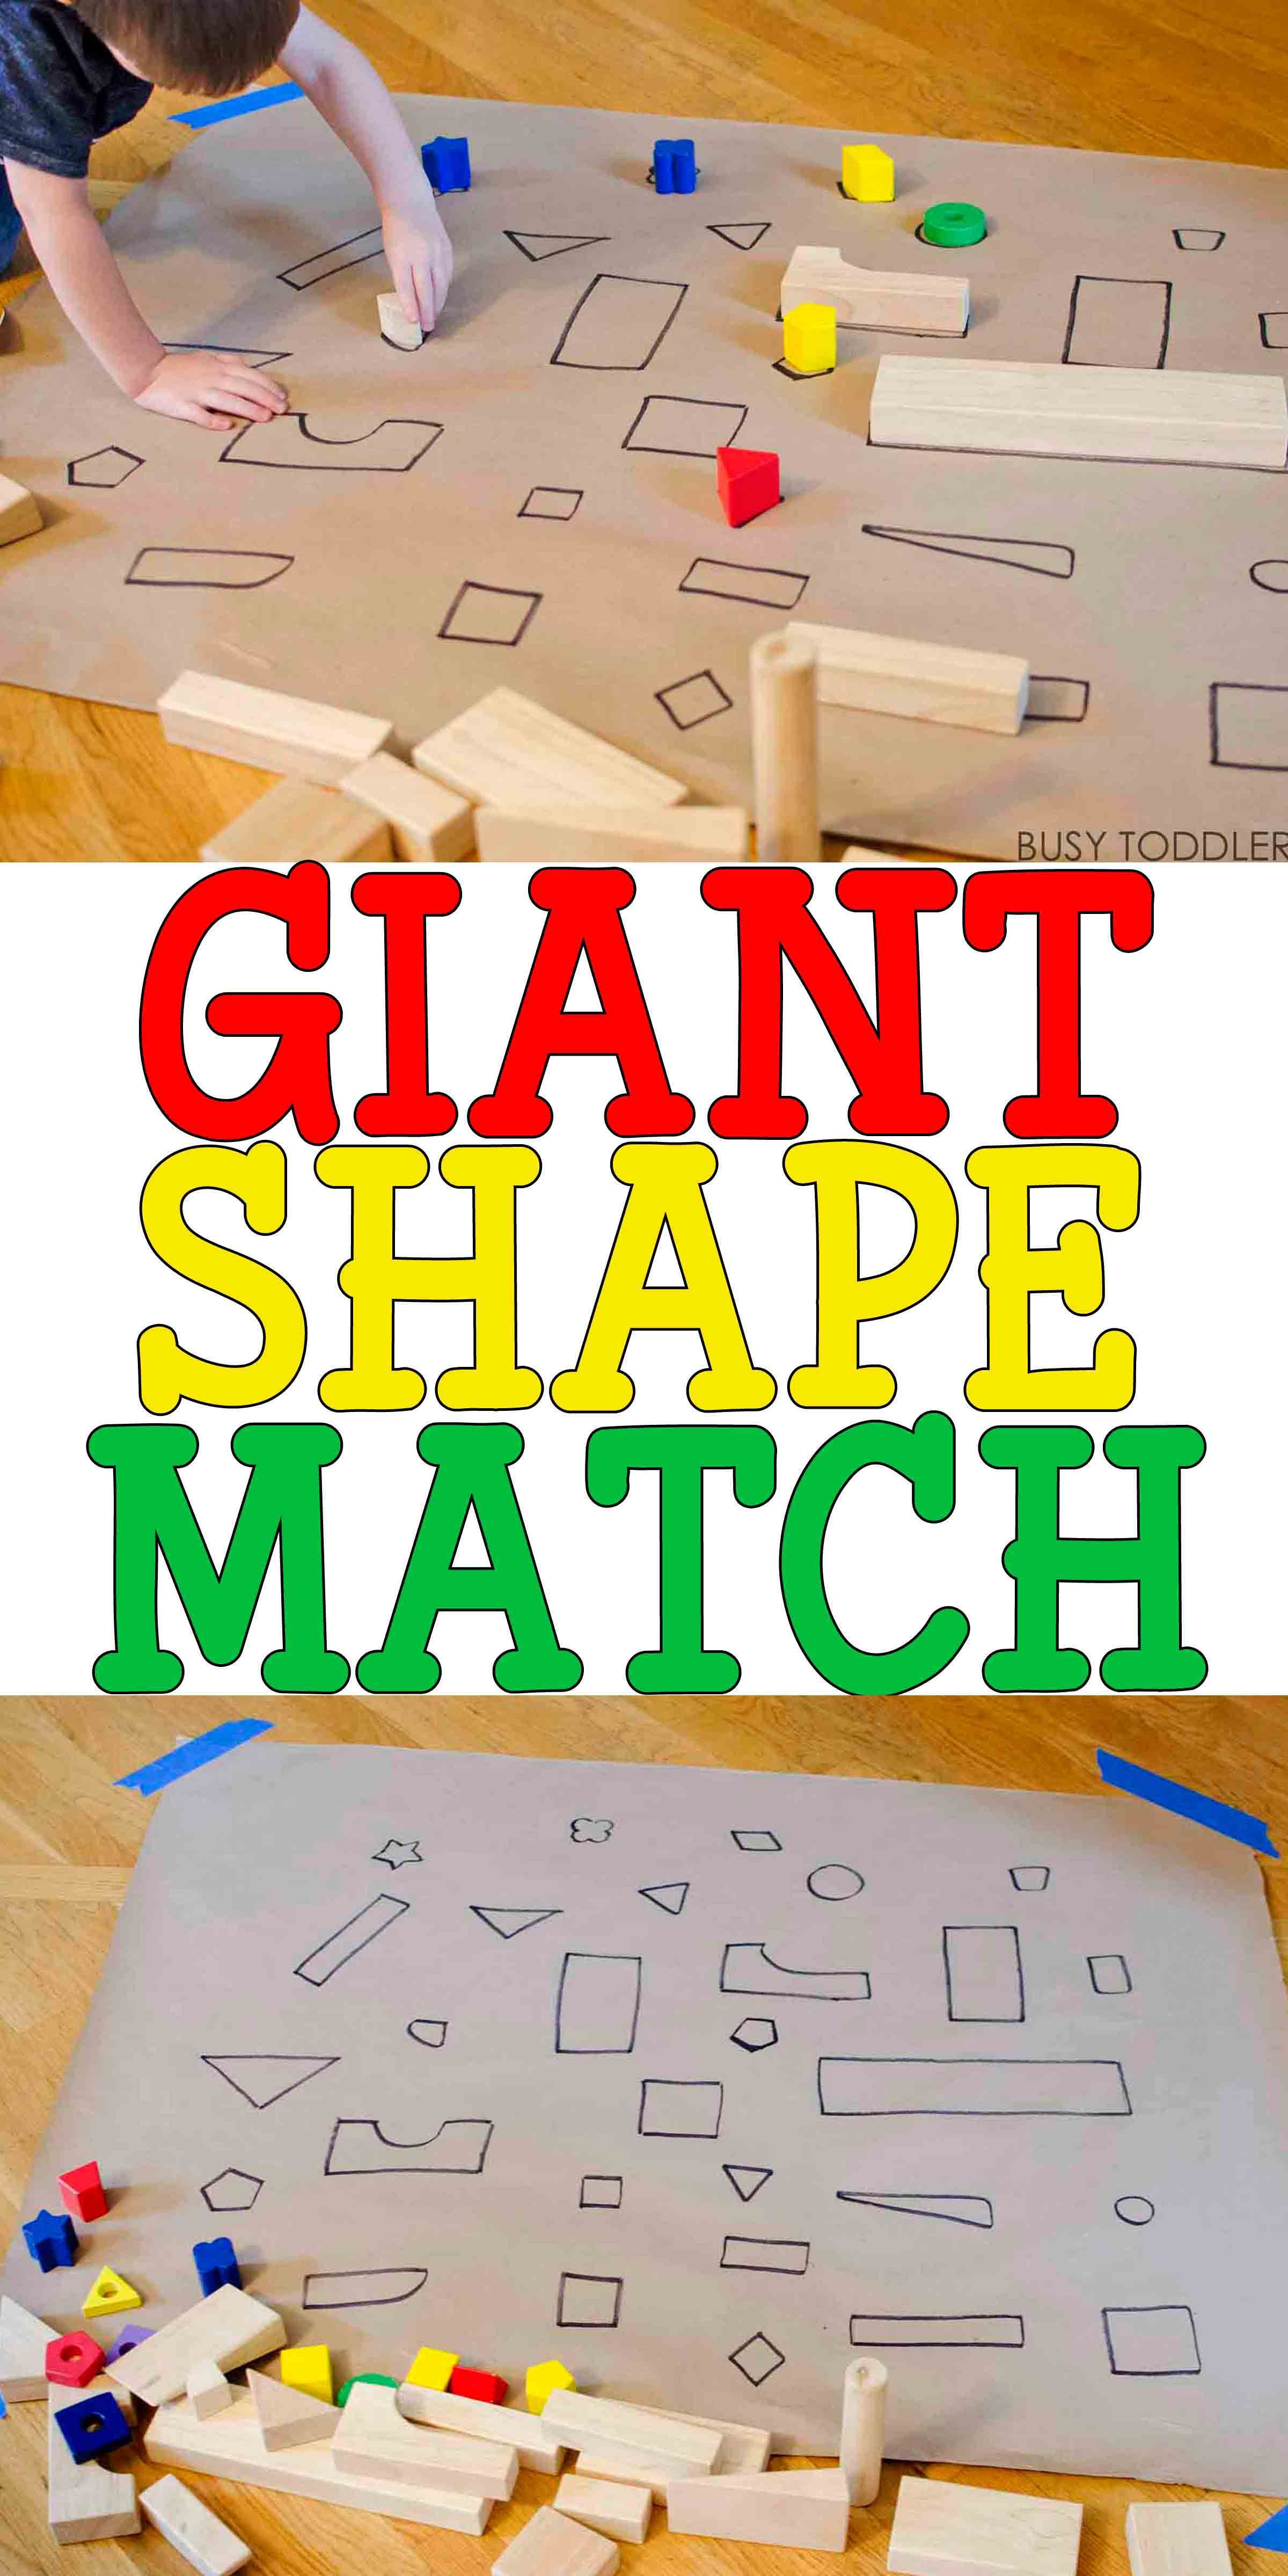 GIANT SHAPE MATCH Check Out This Awesome Indoor Math Activity For Toddlers And Preschoolers